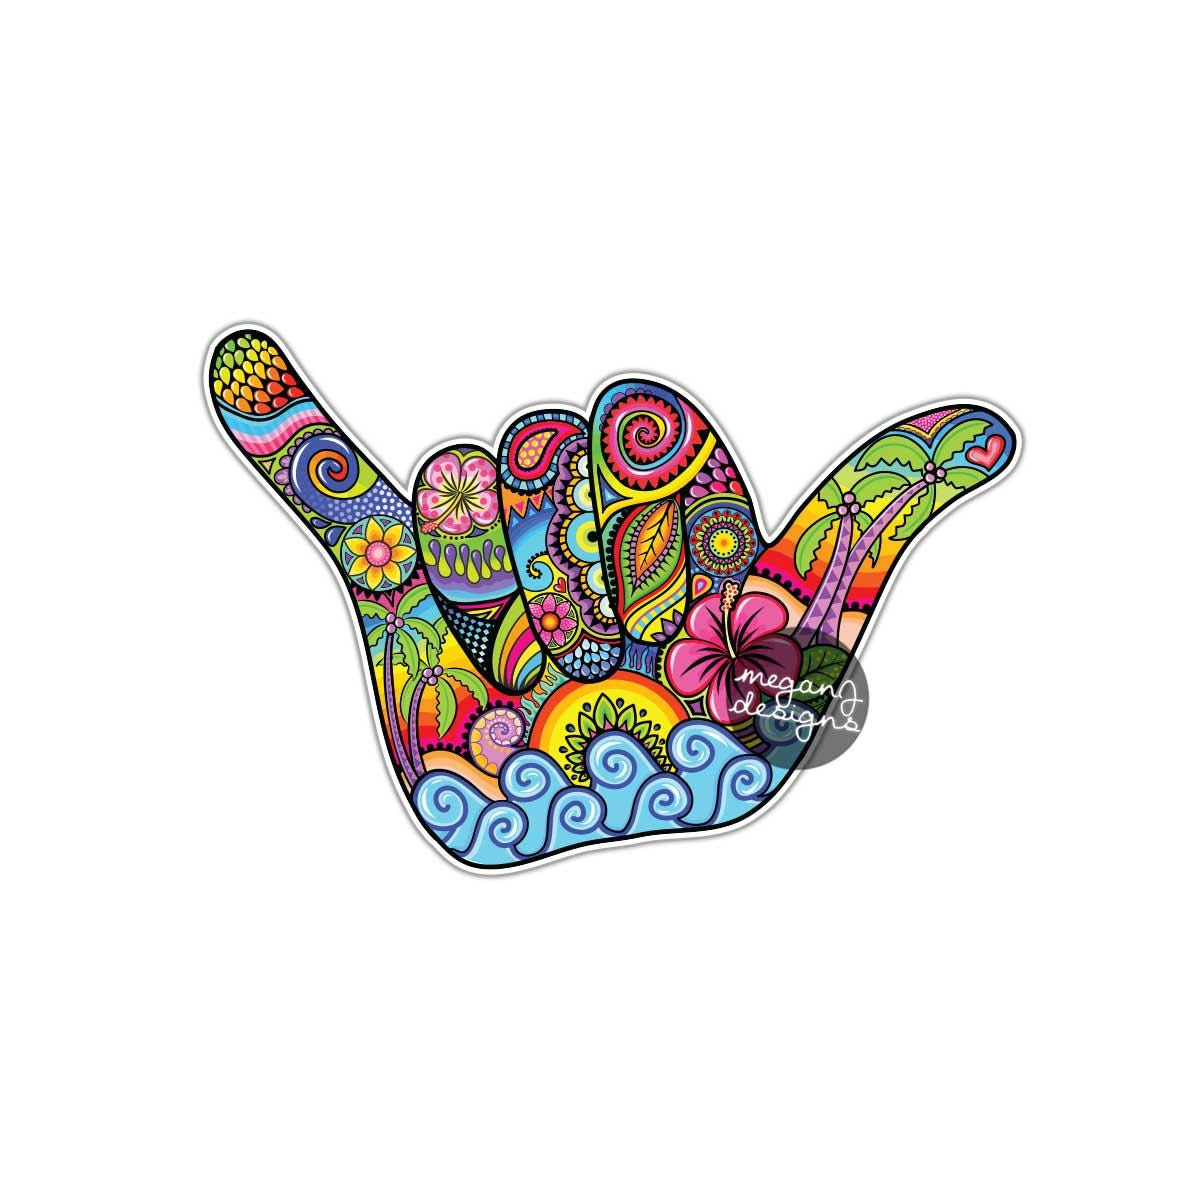 Wall Stickers How To Apply Shaka Sign Hang Loose Hand Sticker Hawaii Decal Colorful Car